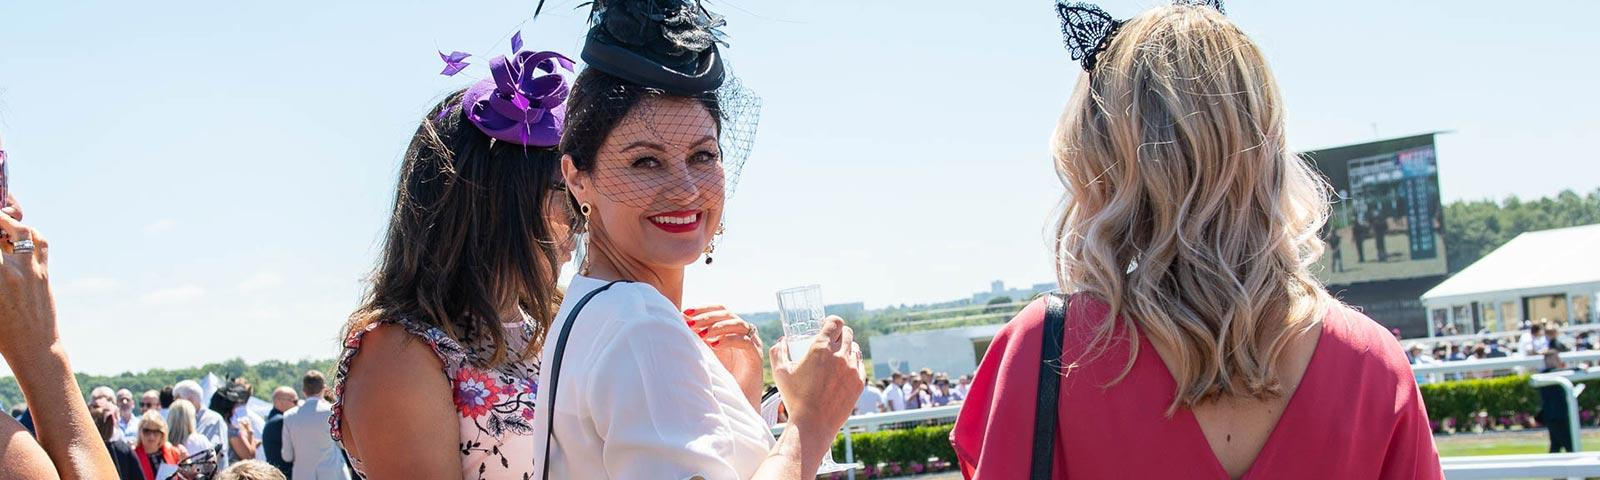 Ladies attending Ladies Day at Newcastle Racecourse